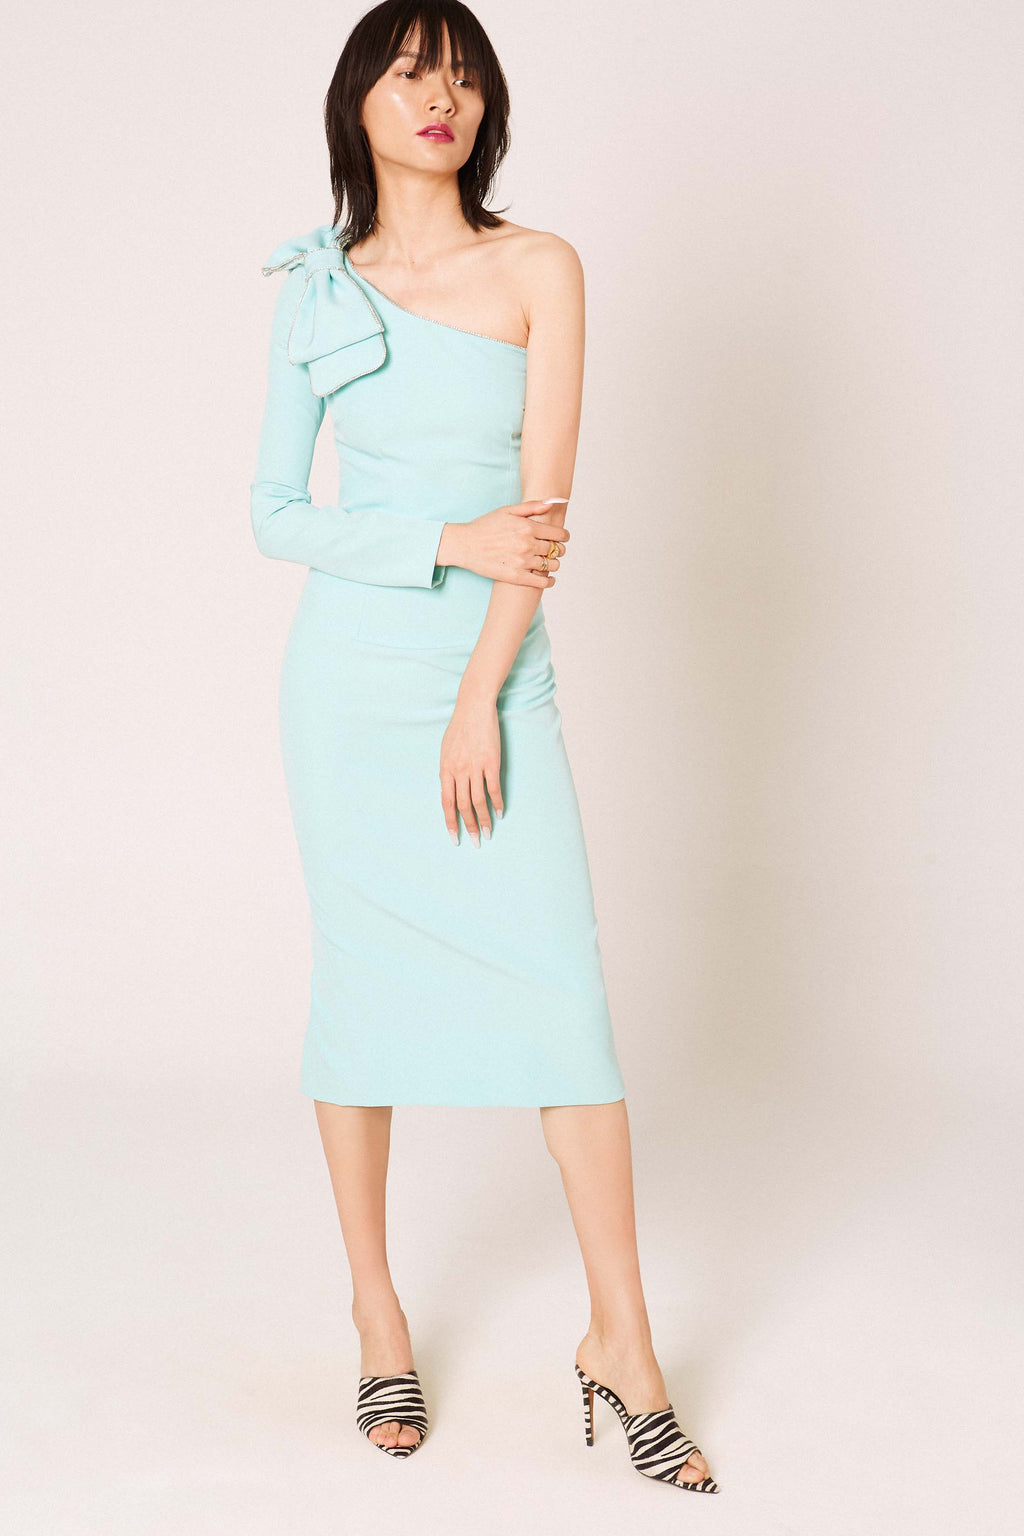 Okkinawa light blue dress - Etxart & Panno USA